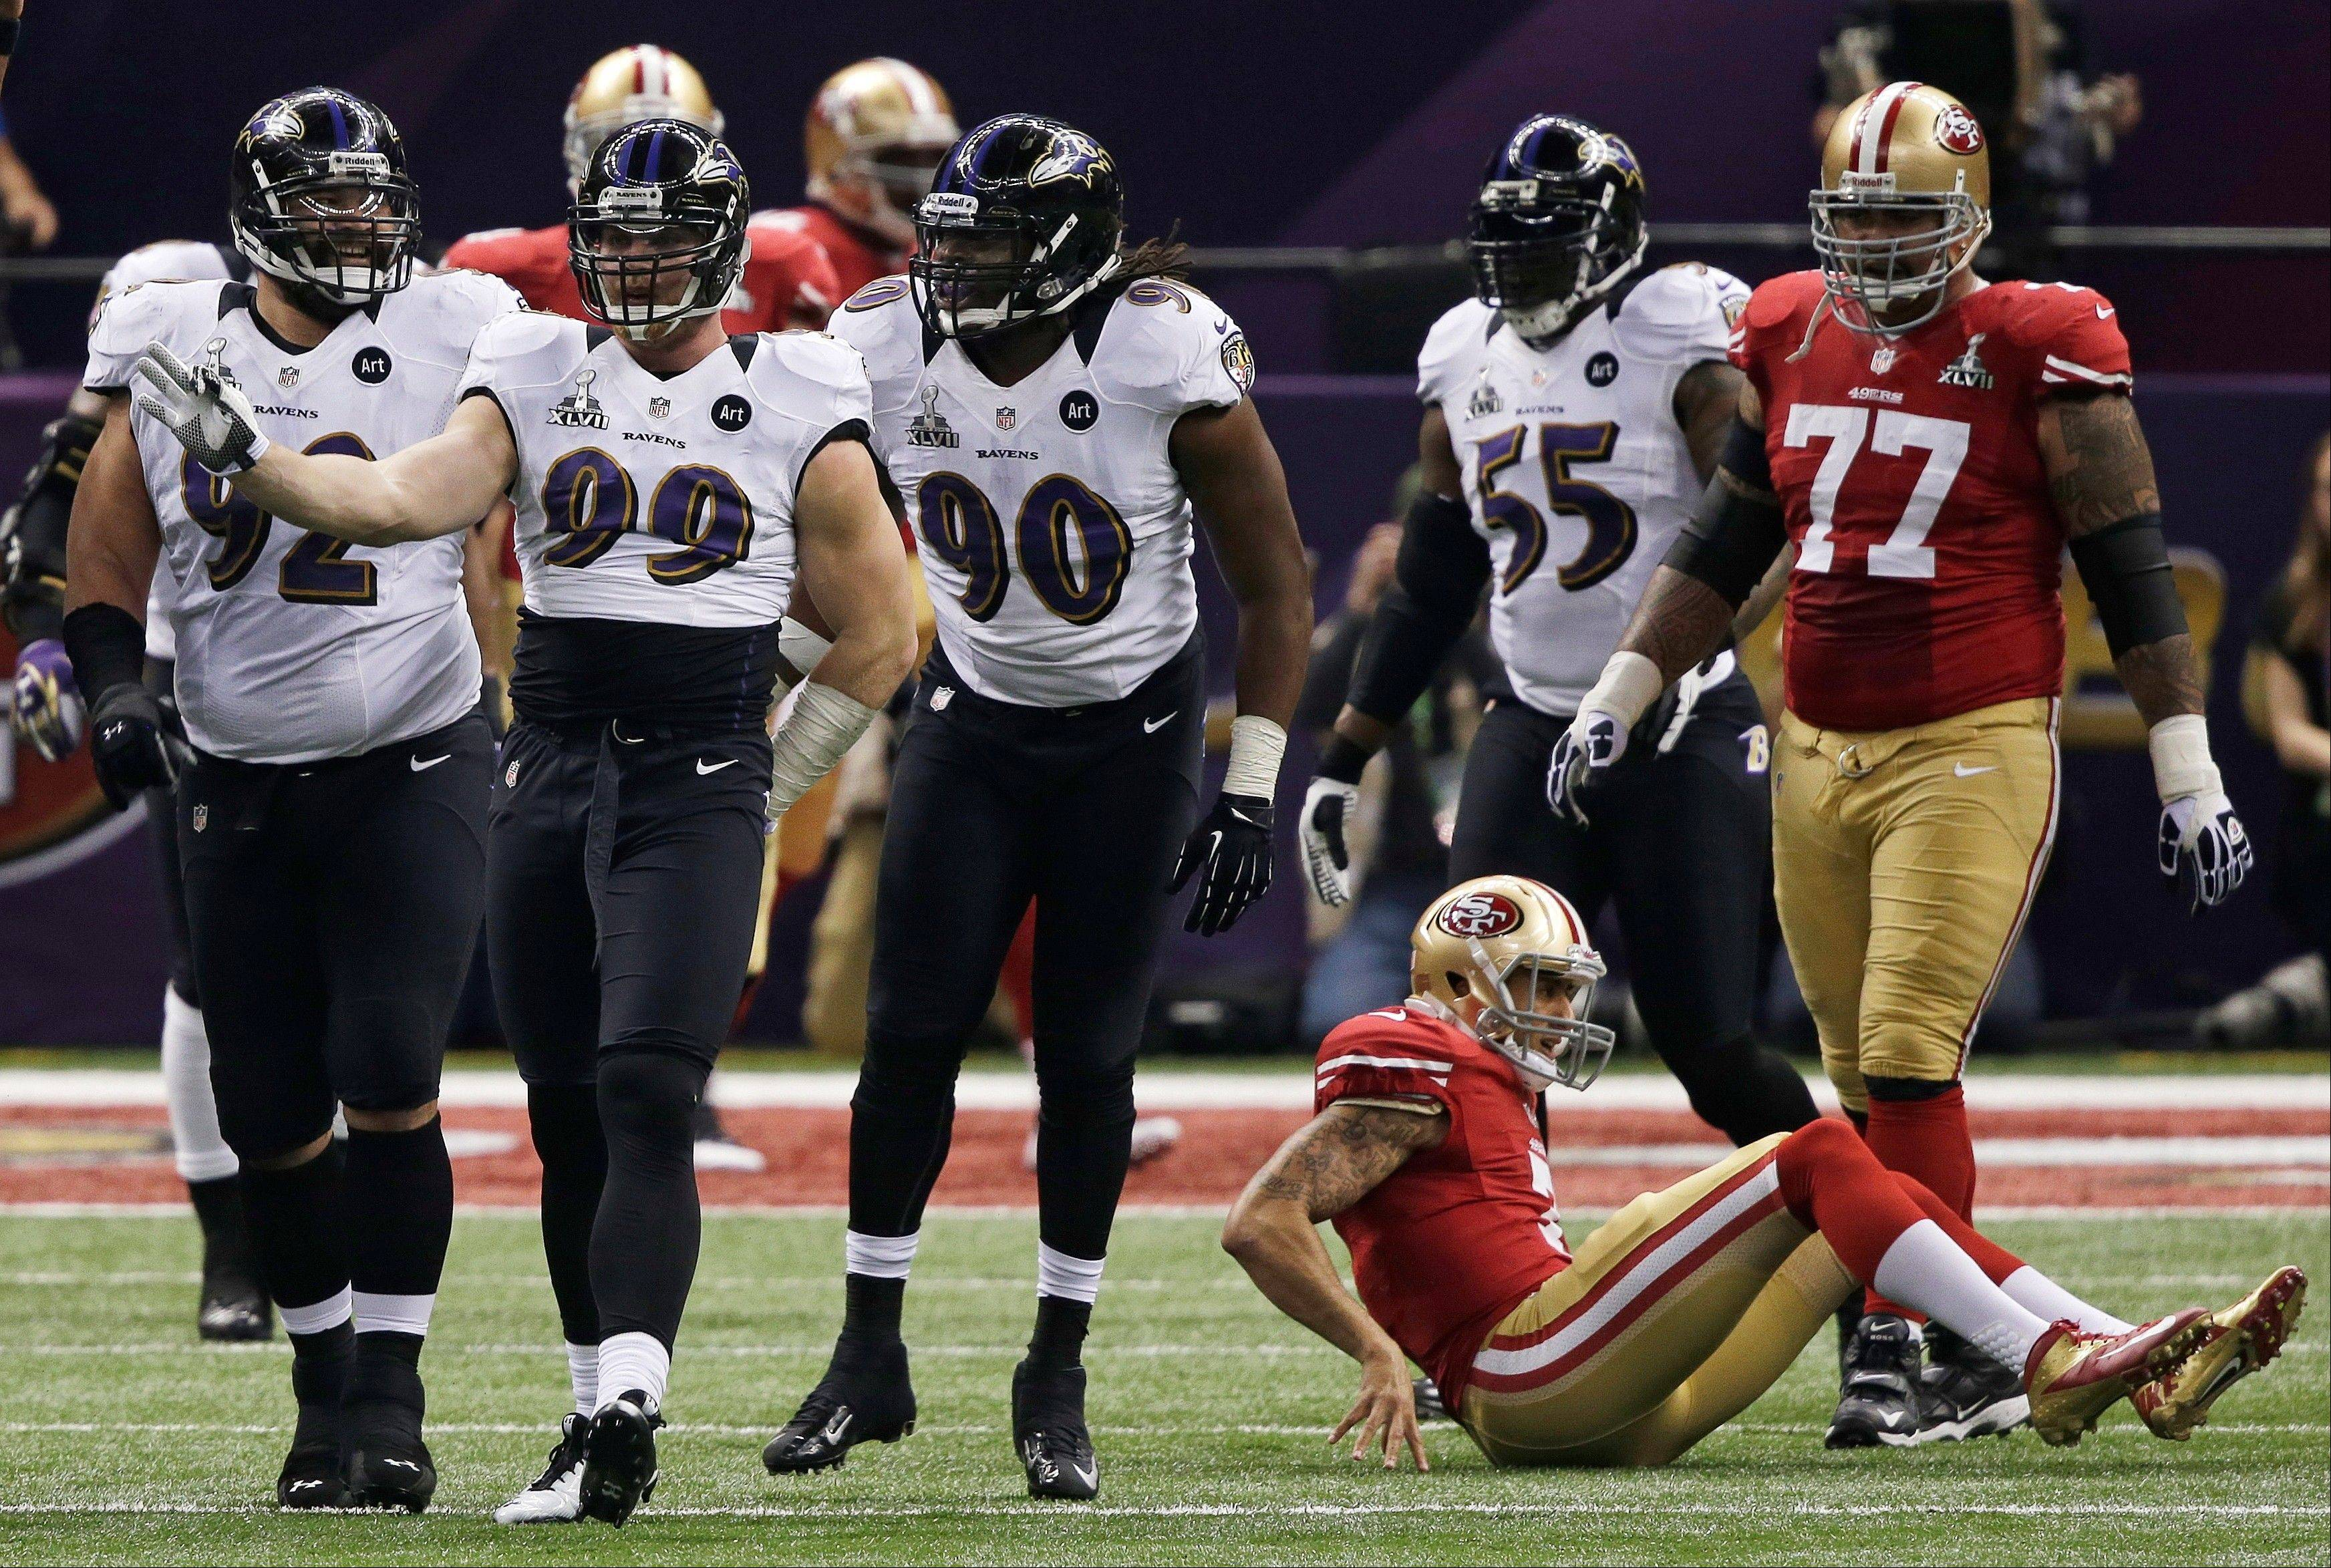 Baltimore Ravens linebacker Paul Kruger (99) reacts after sacking San Francisco 49ers quarterback Colin Kaepernick (7) during the first half.